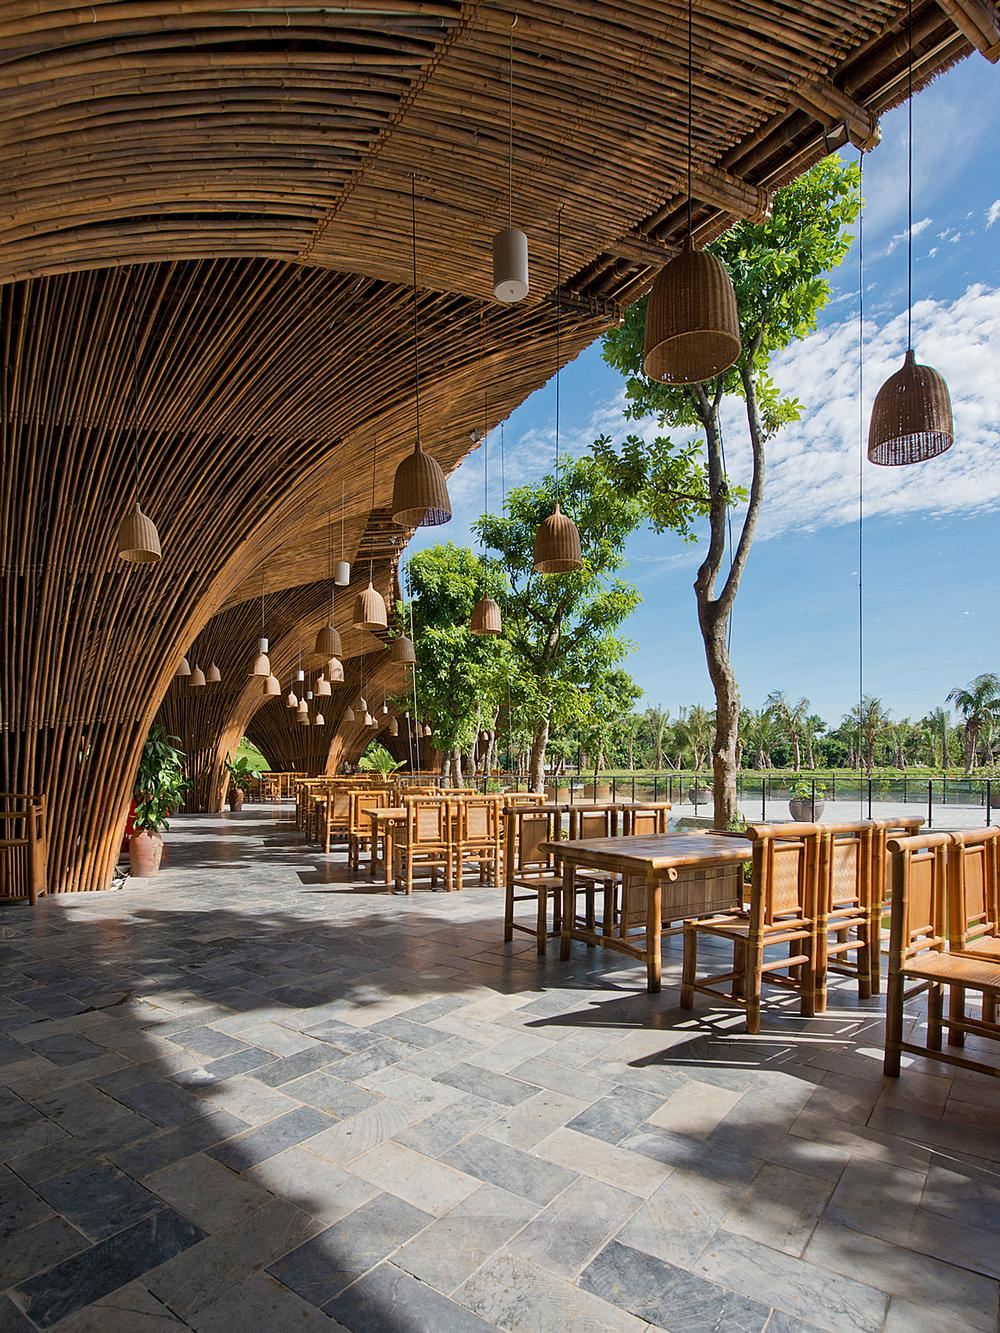 Vo Trong Nghia's Kontum Indochine Café in Central Vietnam has a bamboo clad roof